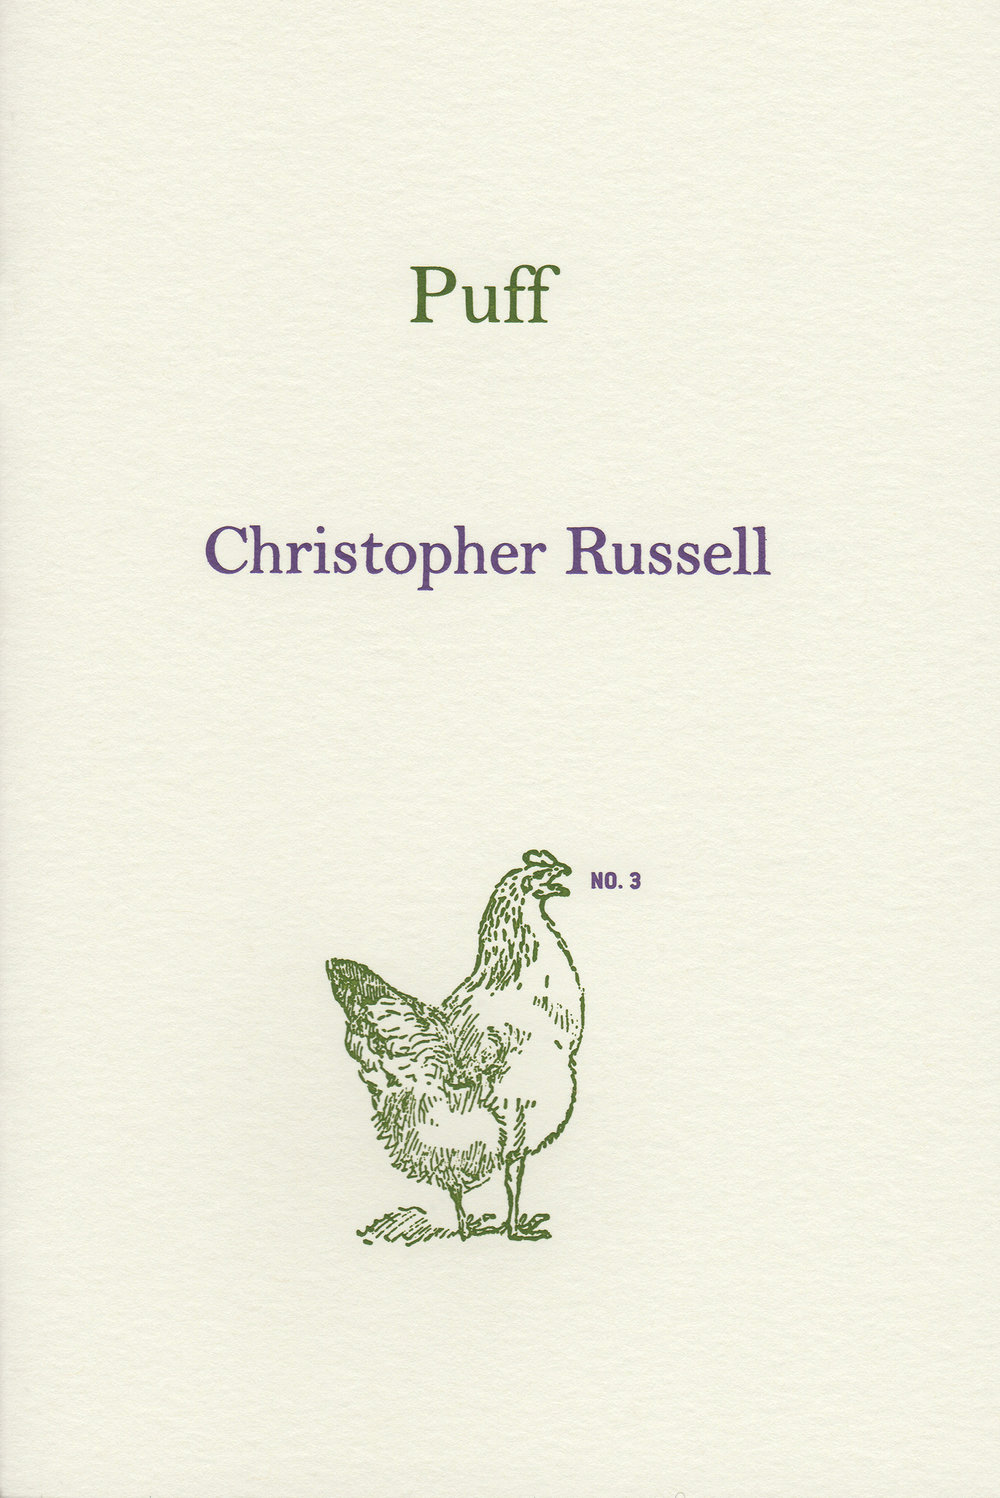 Puff  by Christopher Russell, 2015 Offset lithography, engraved cover, 6.75 x 4.5 inches, 28 pages. Edition of 300 Designed by Susan Silton $35